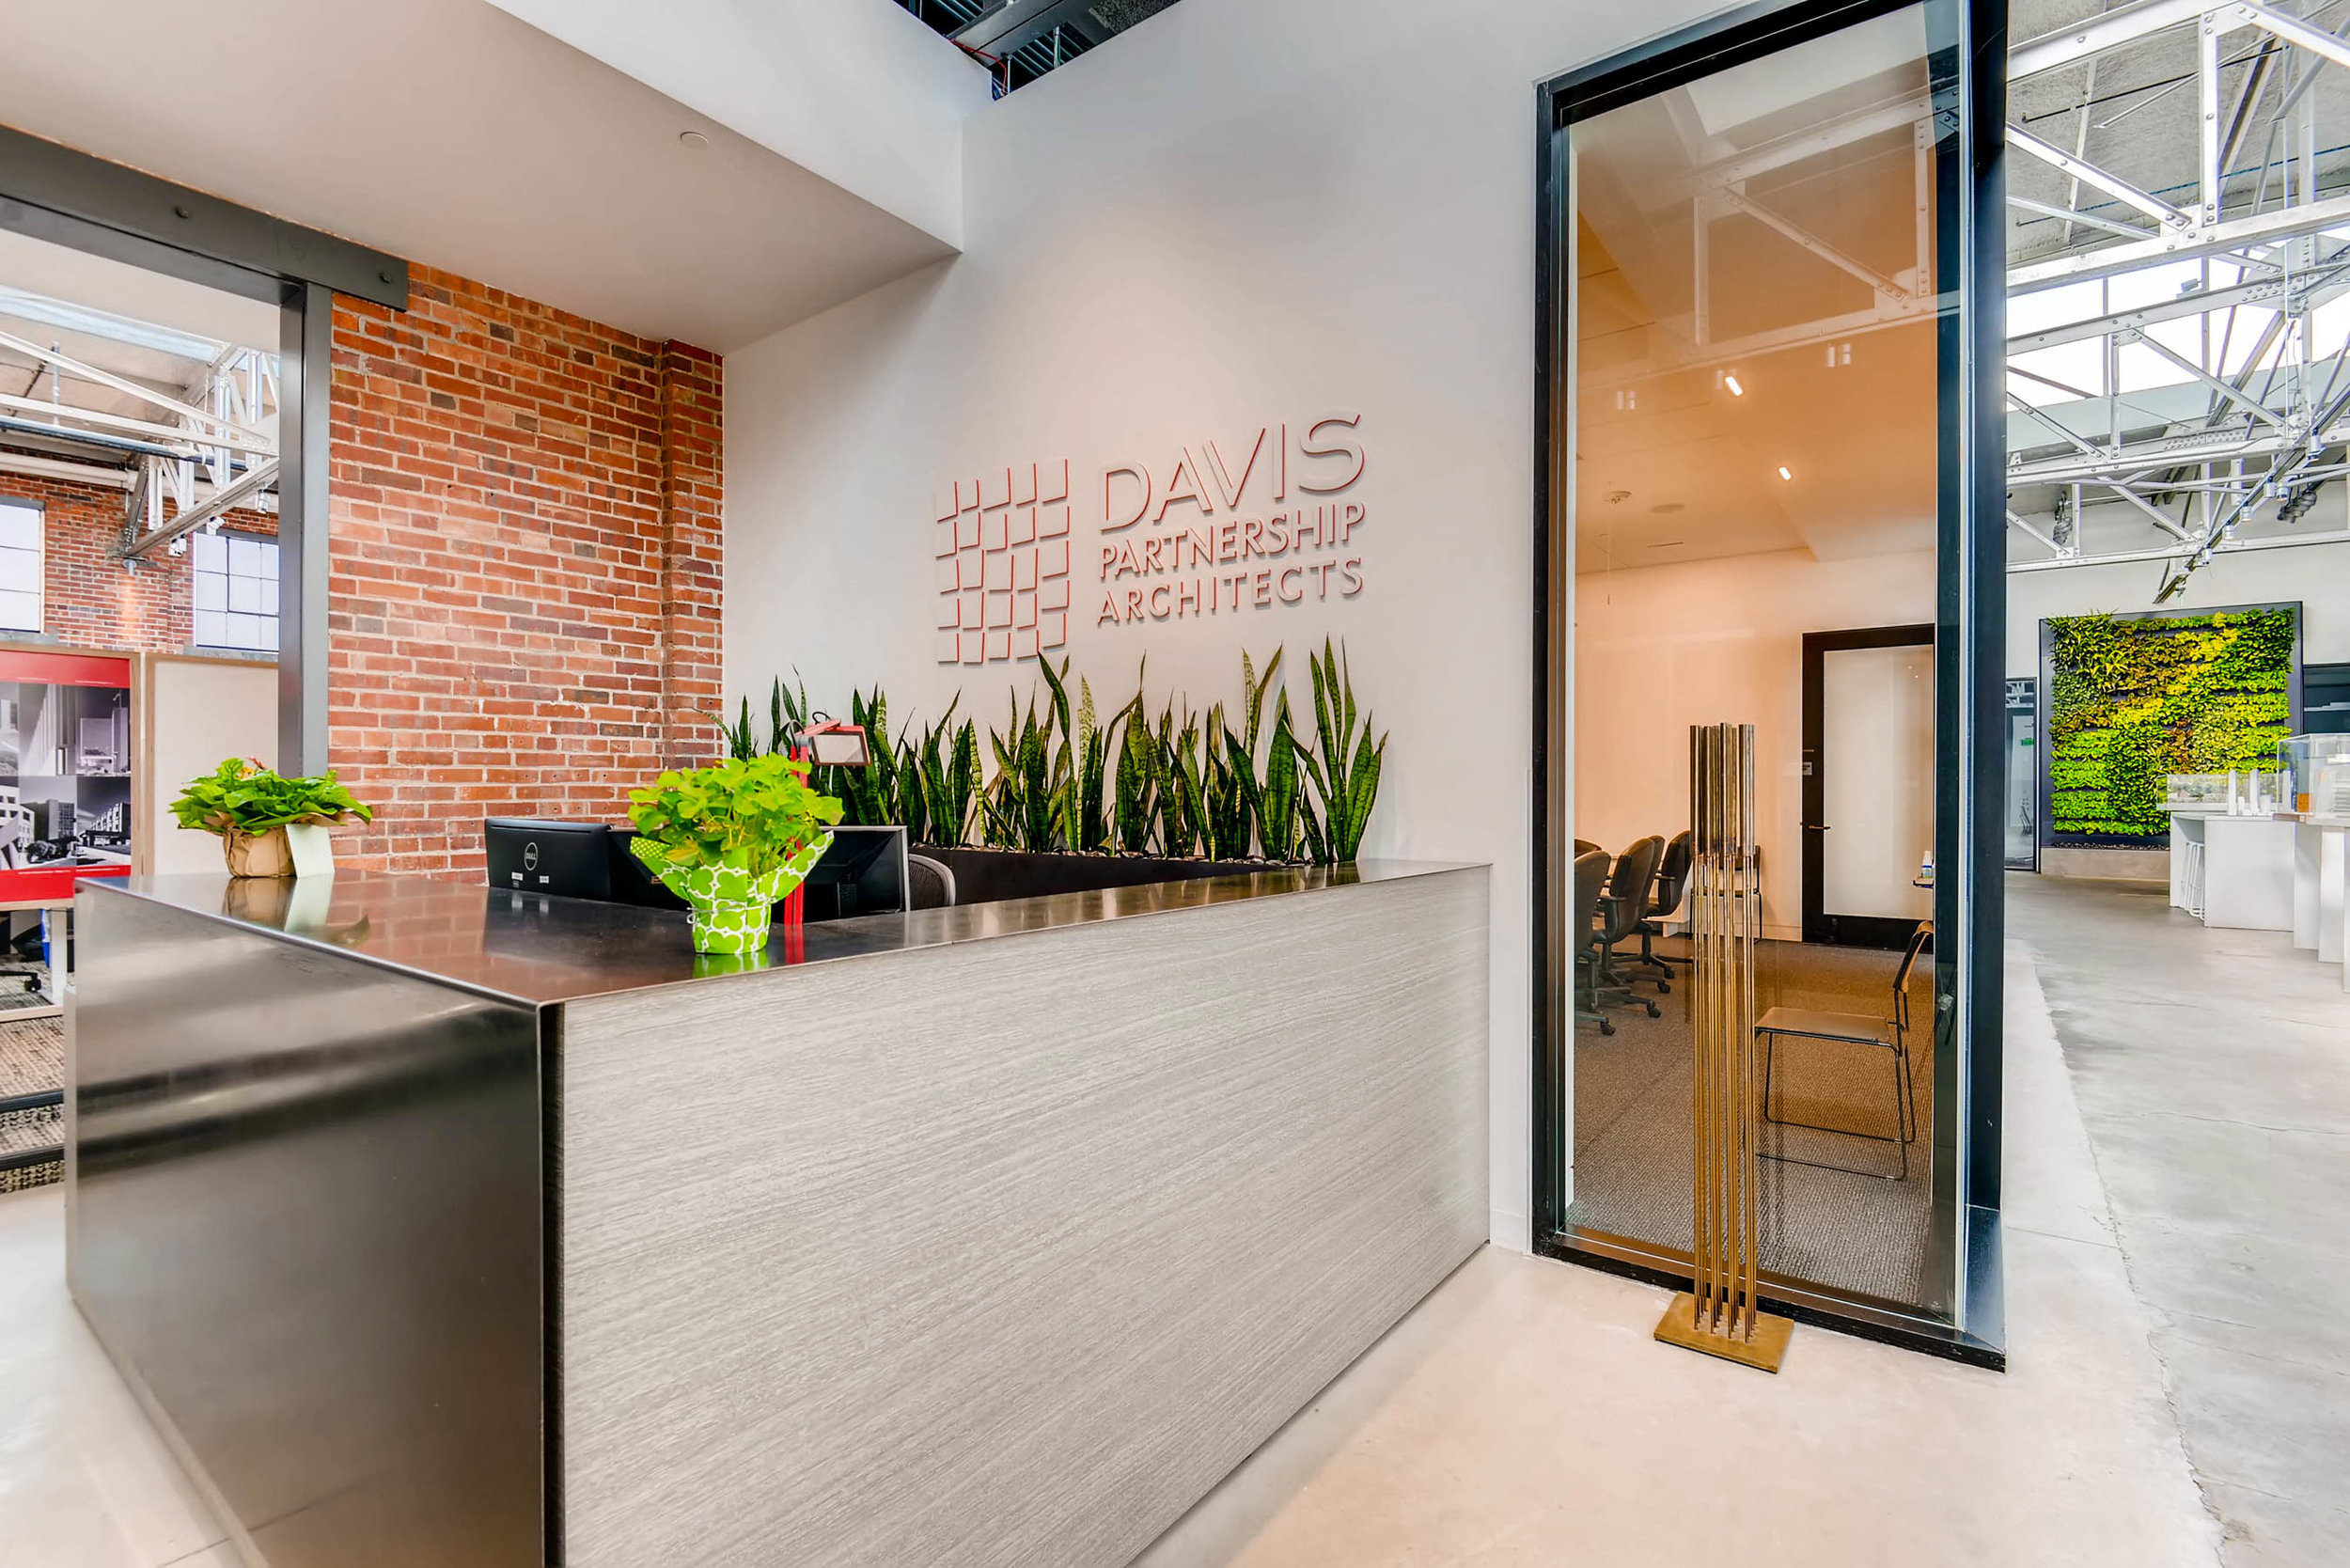 Davis Partnership Architects - Interior Living Wall by Suite Plants